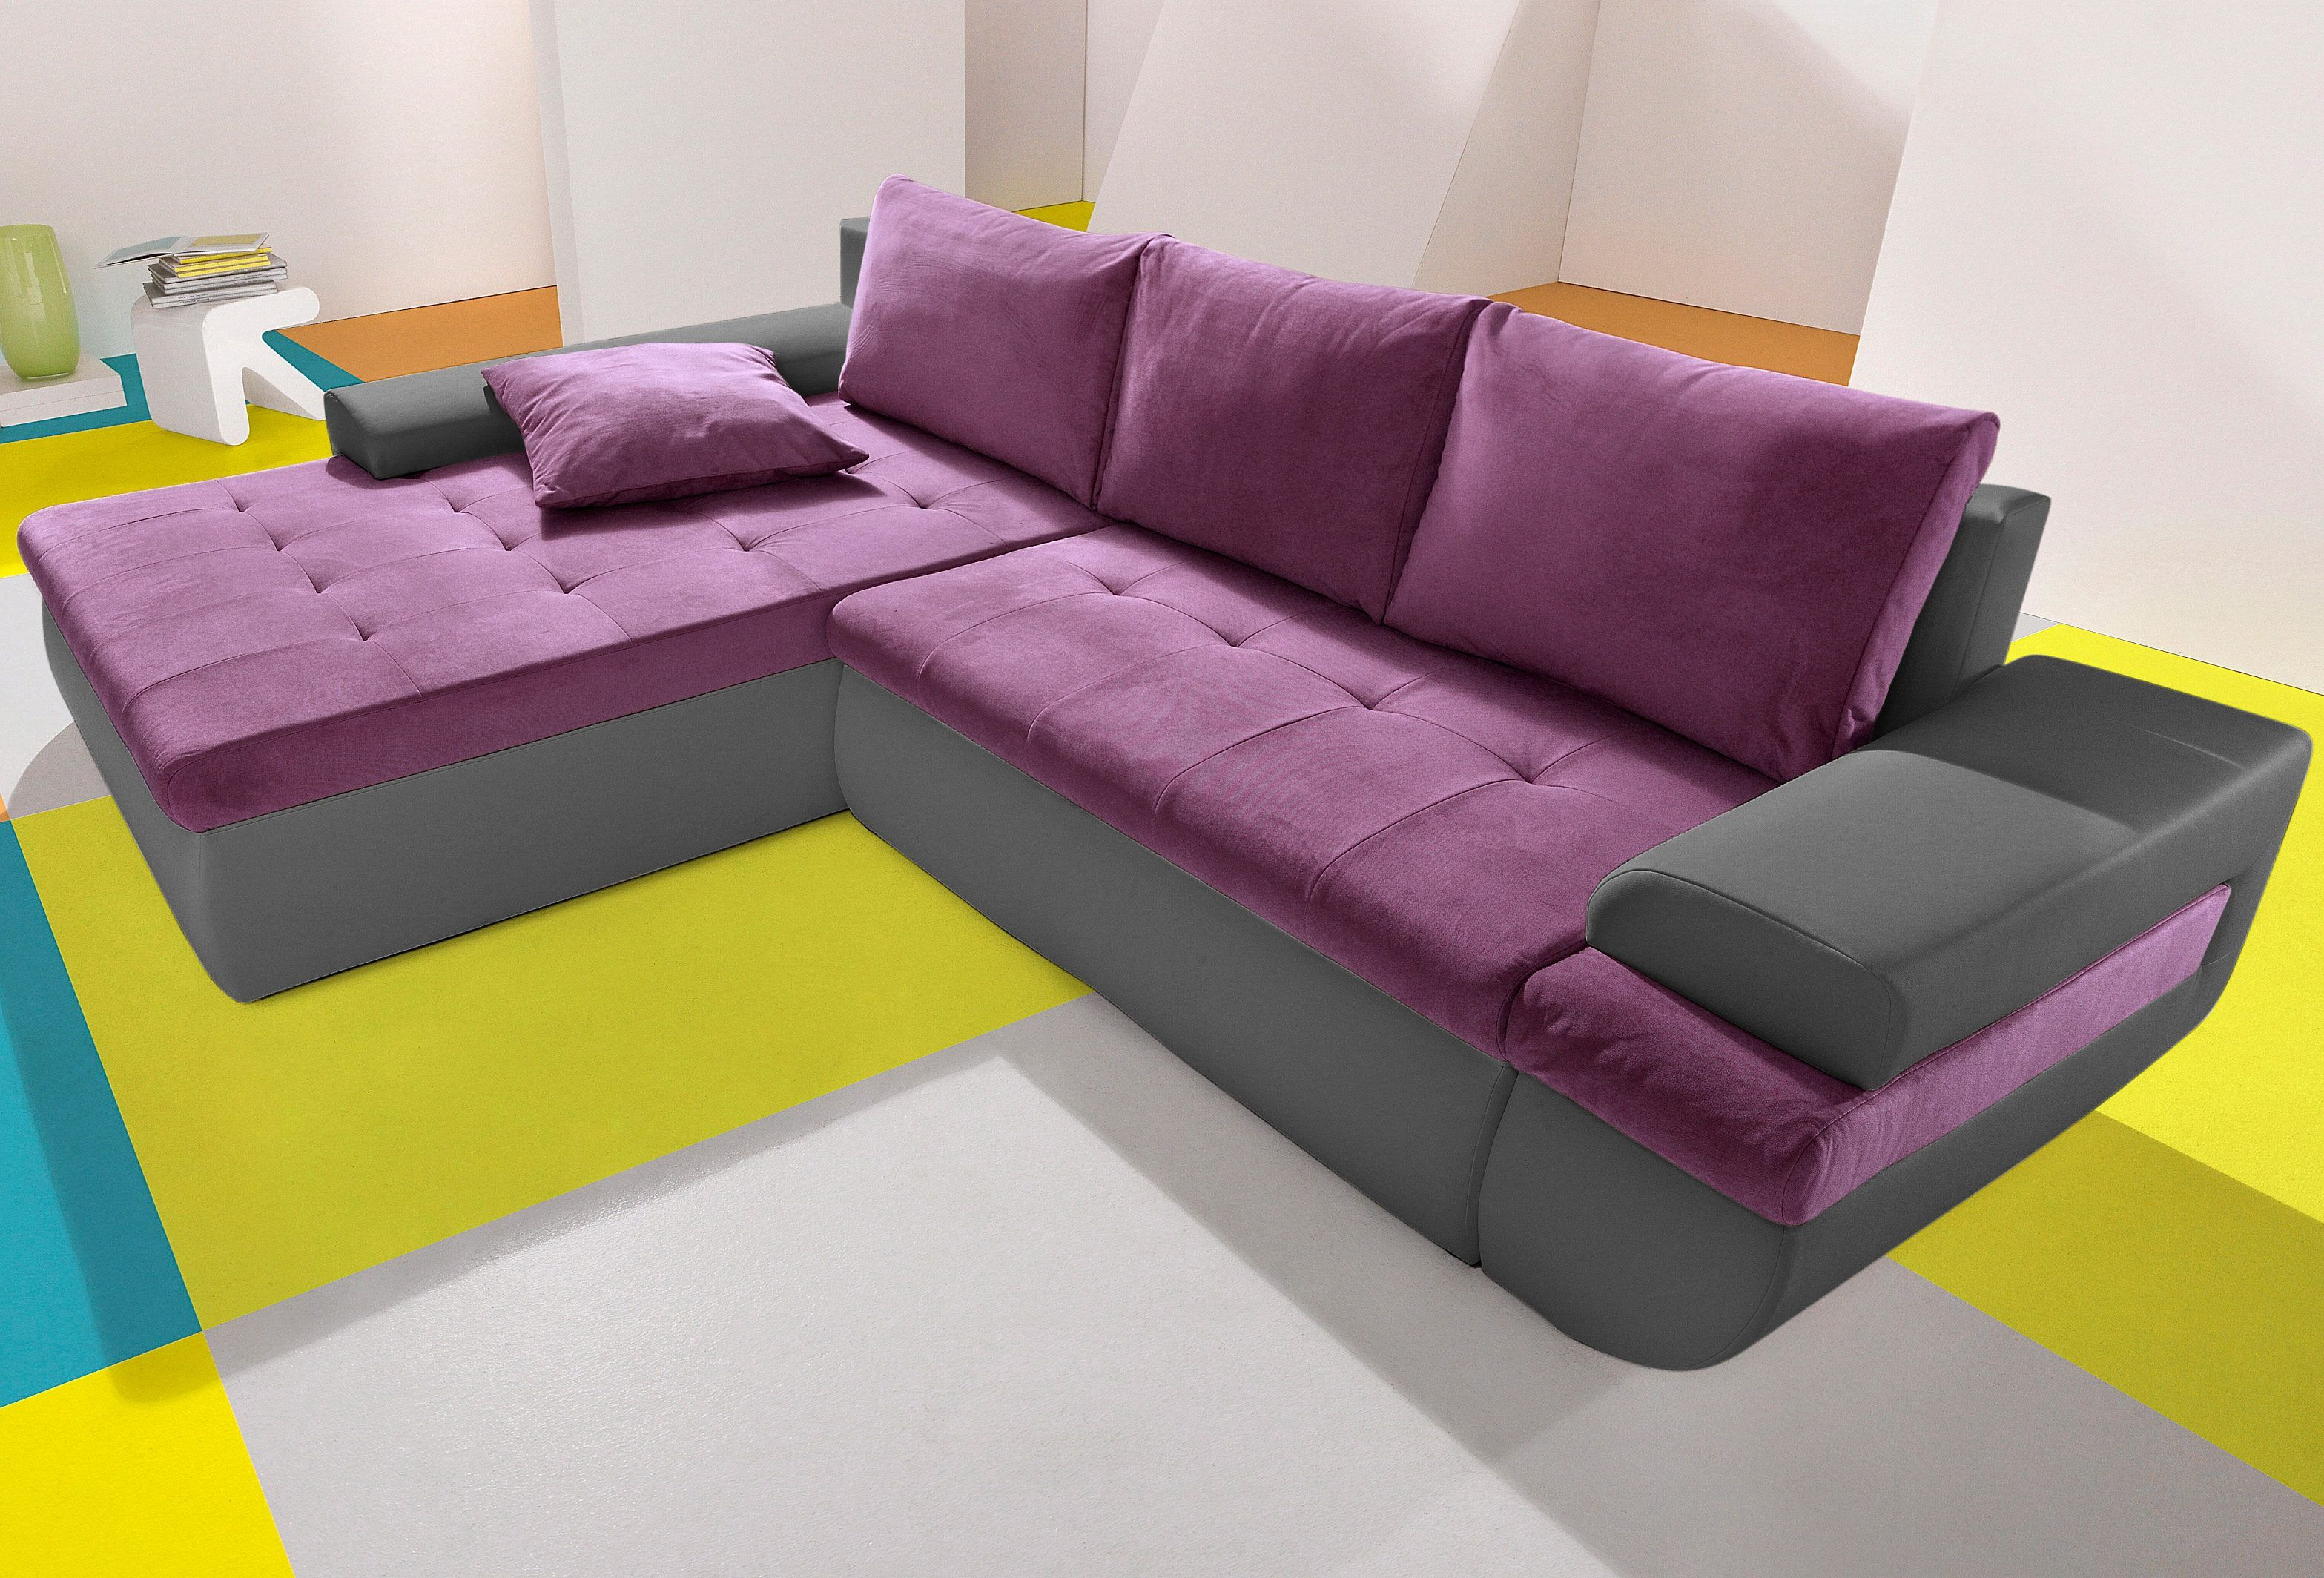 Xxl Sofa Mit Bettfunktion Inosign Ecksofa Lila Xxl Recamiere Links Mit Bettfunktion